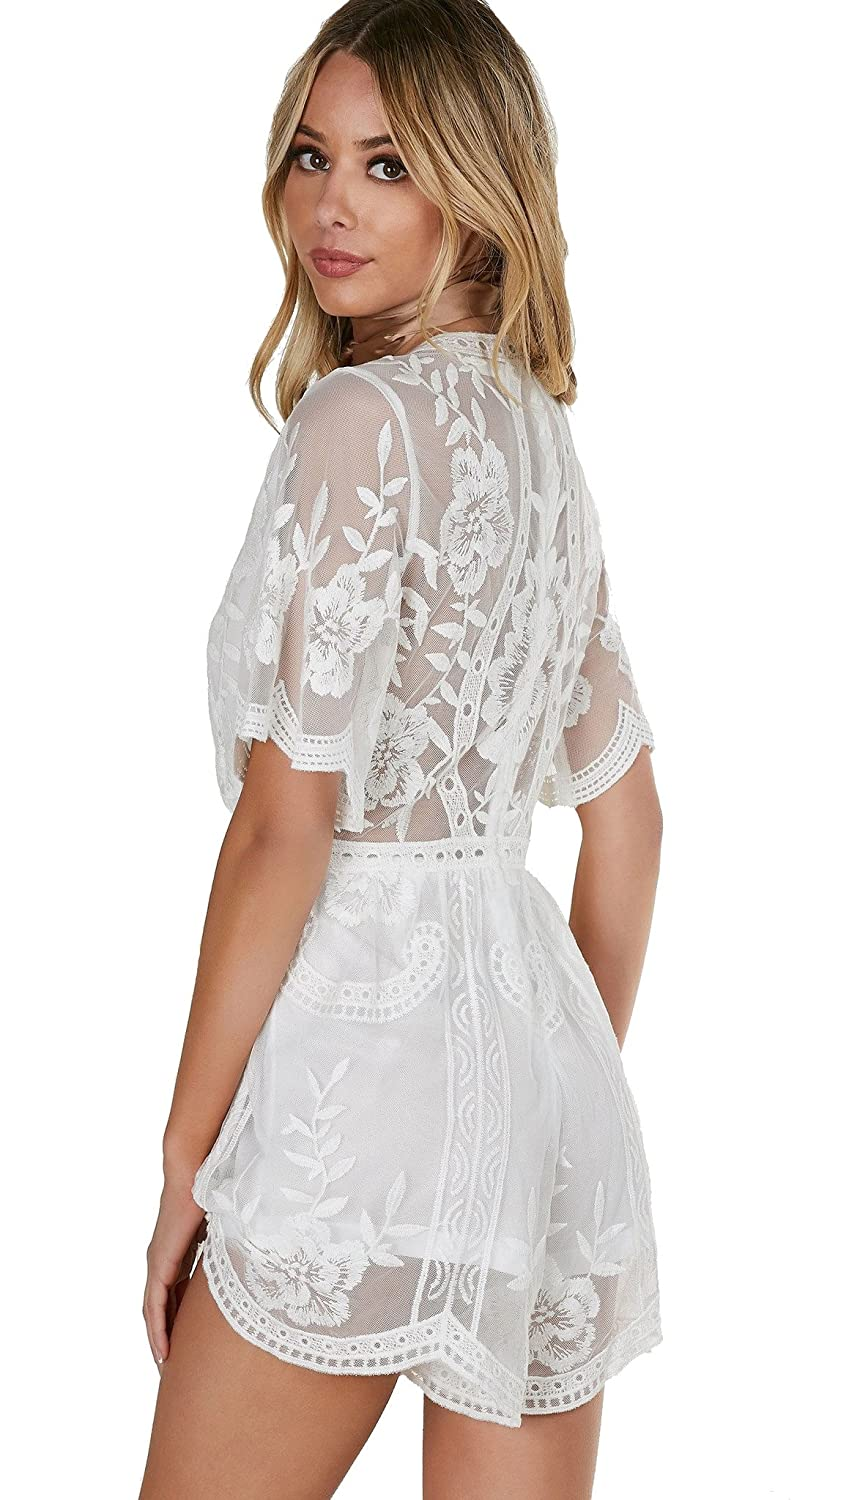 ebddcd372059 Amazon.com  Honey Punch Antique Embroidered Crochet Deep V Neck Romper  White Lace  Clothing